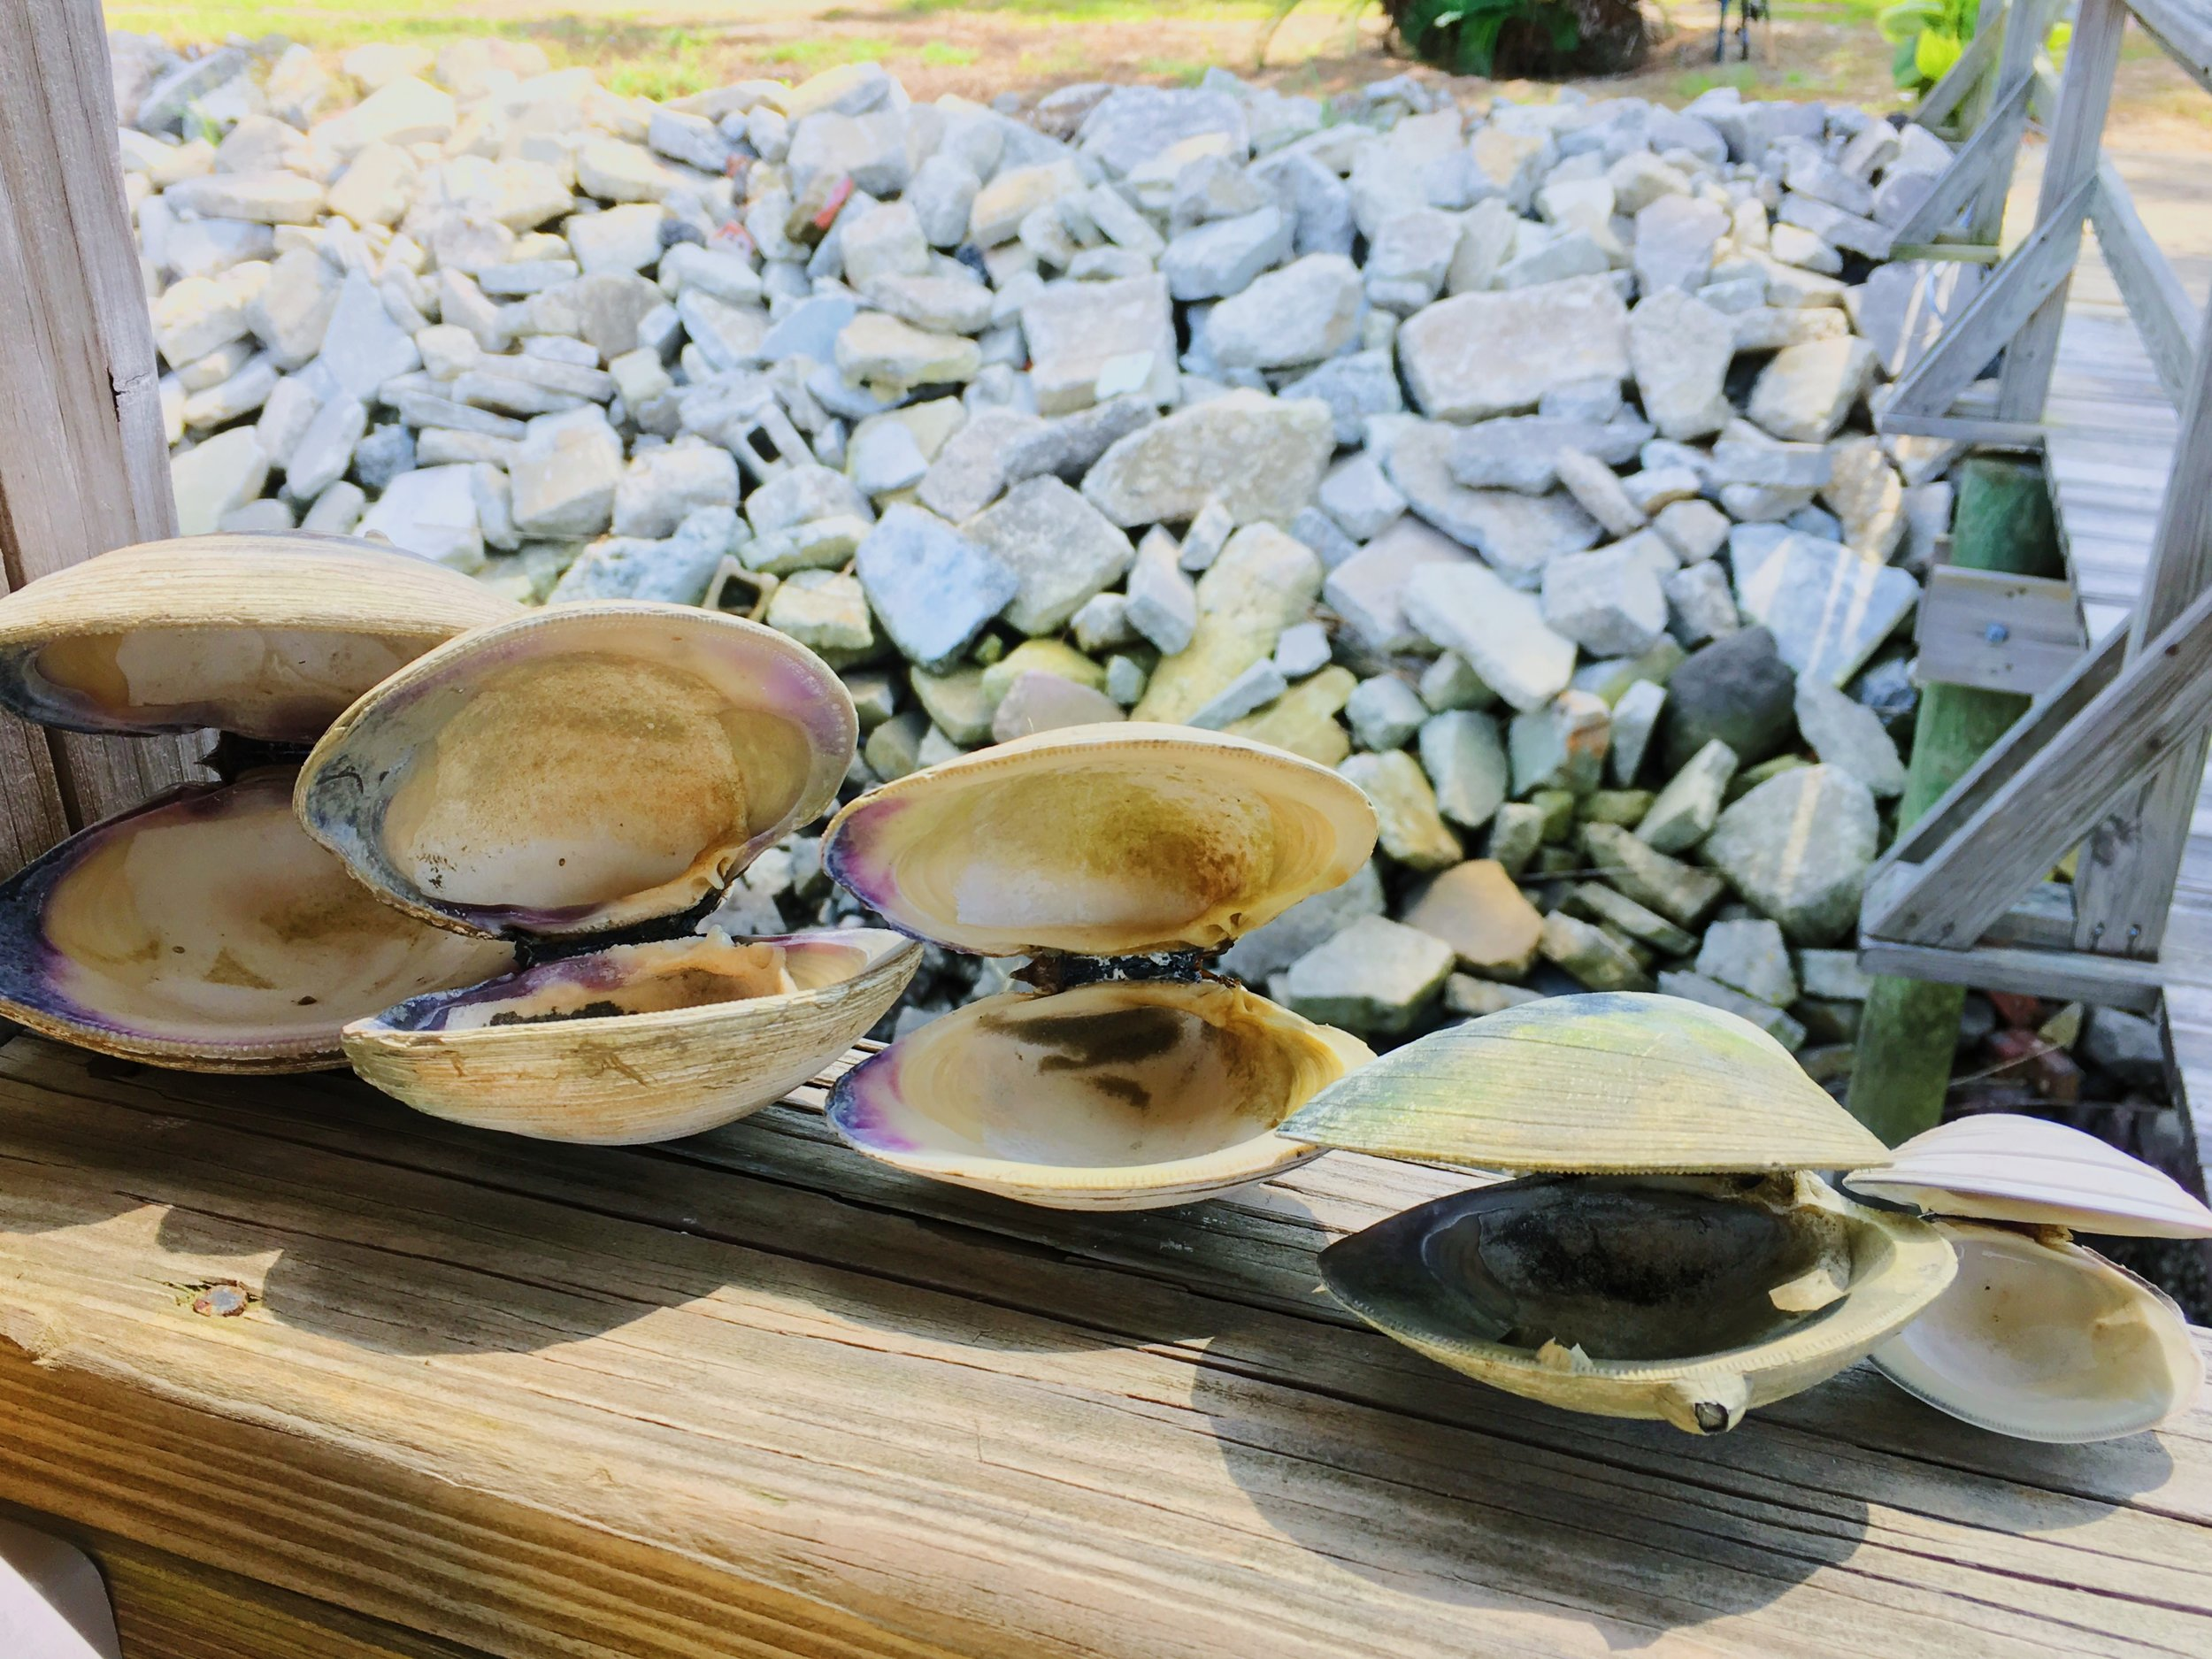 the spoils of exploration. These were the best and brightest of the clam community.